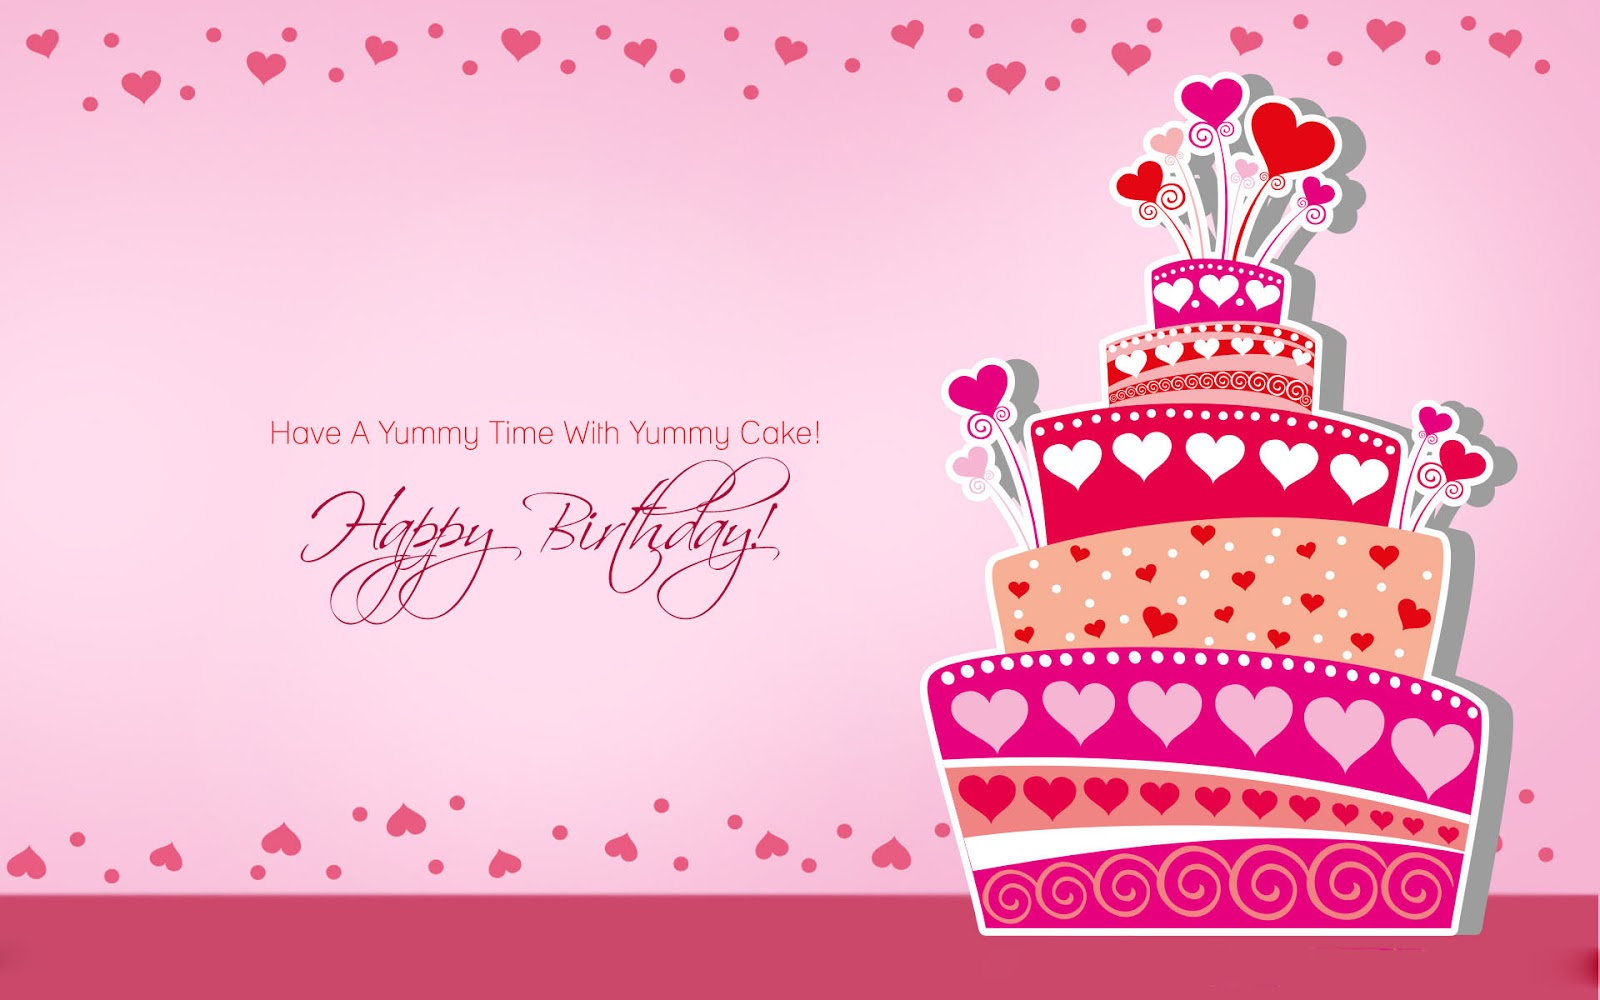 Love Birthday Wallpapers Backgrounds : TOP 20 Happy Birthday HD Wallpapers Pictures Happy Birthday collection